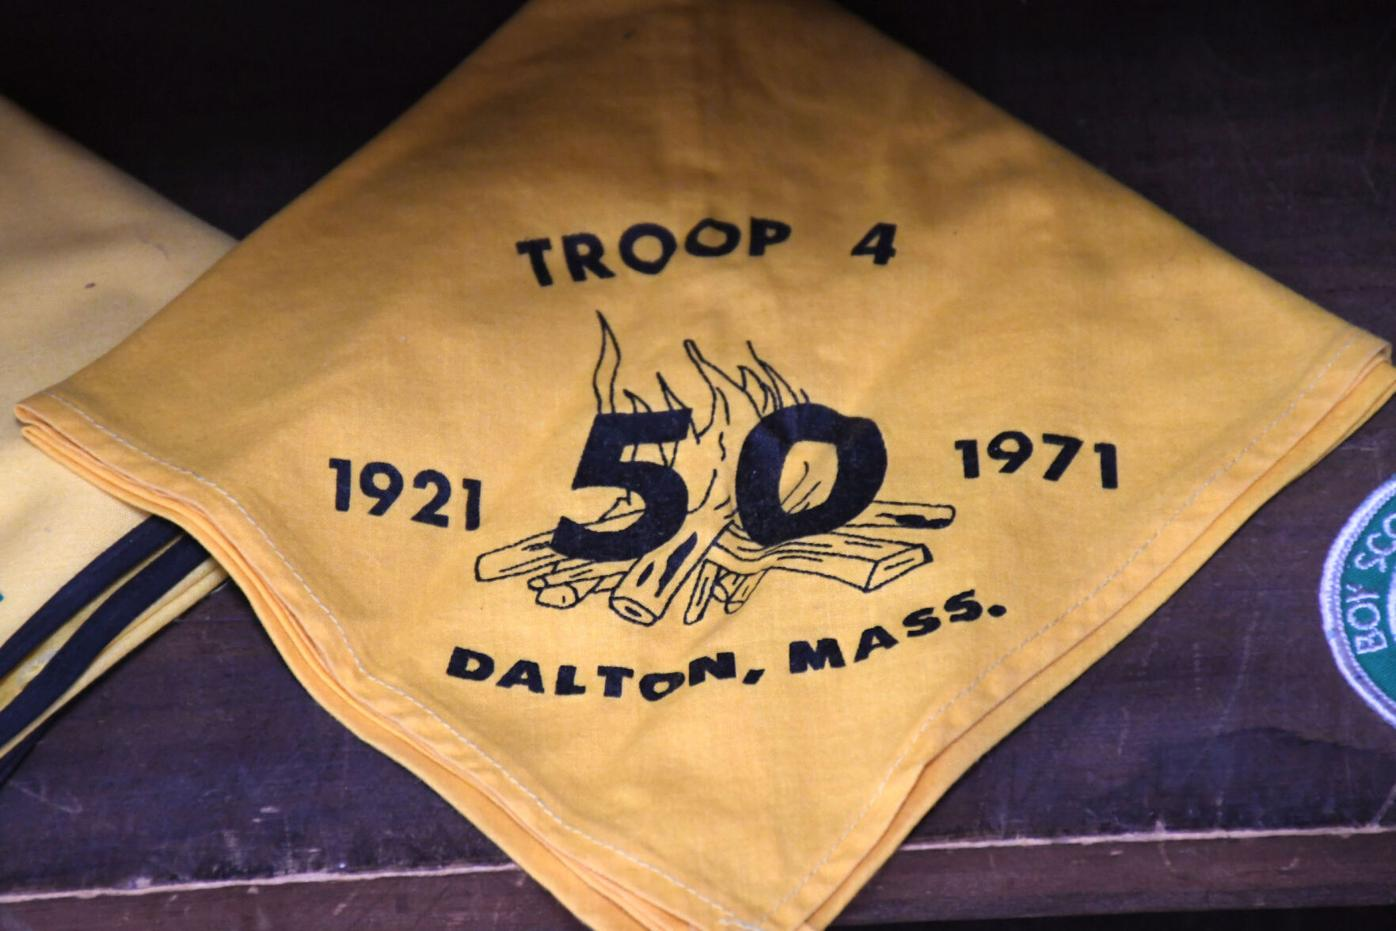 A troop 4 50th anniversary scarf